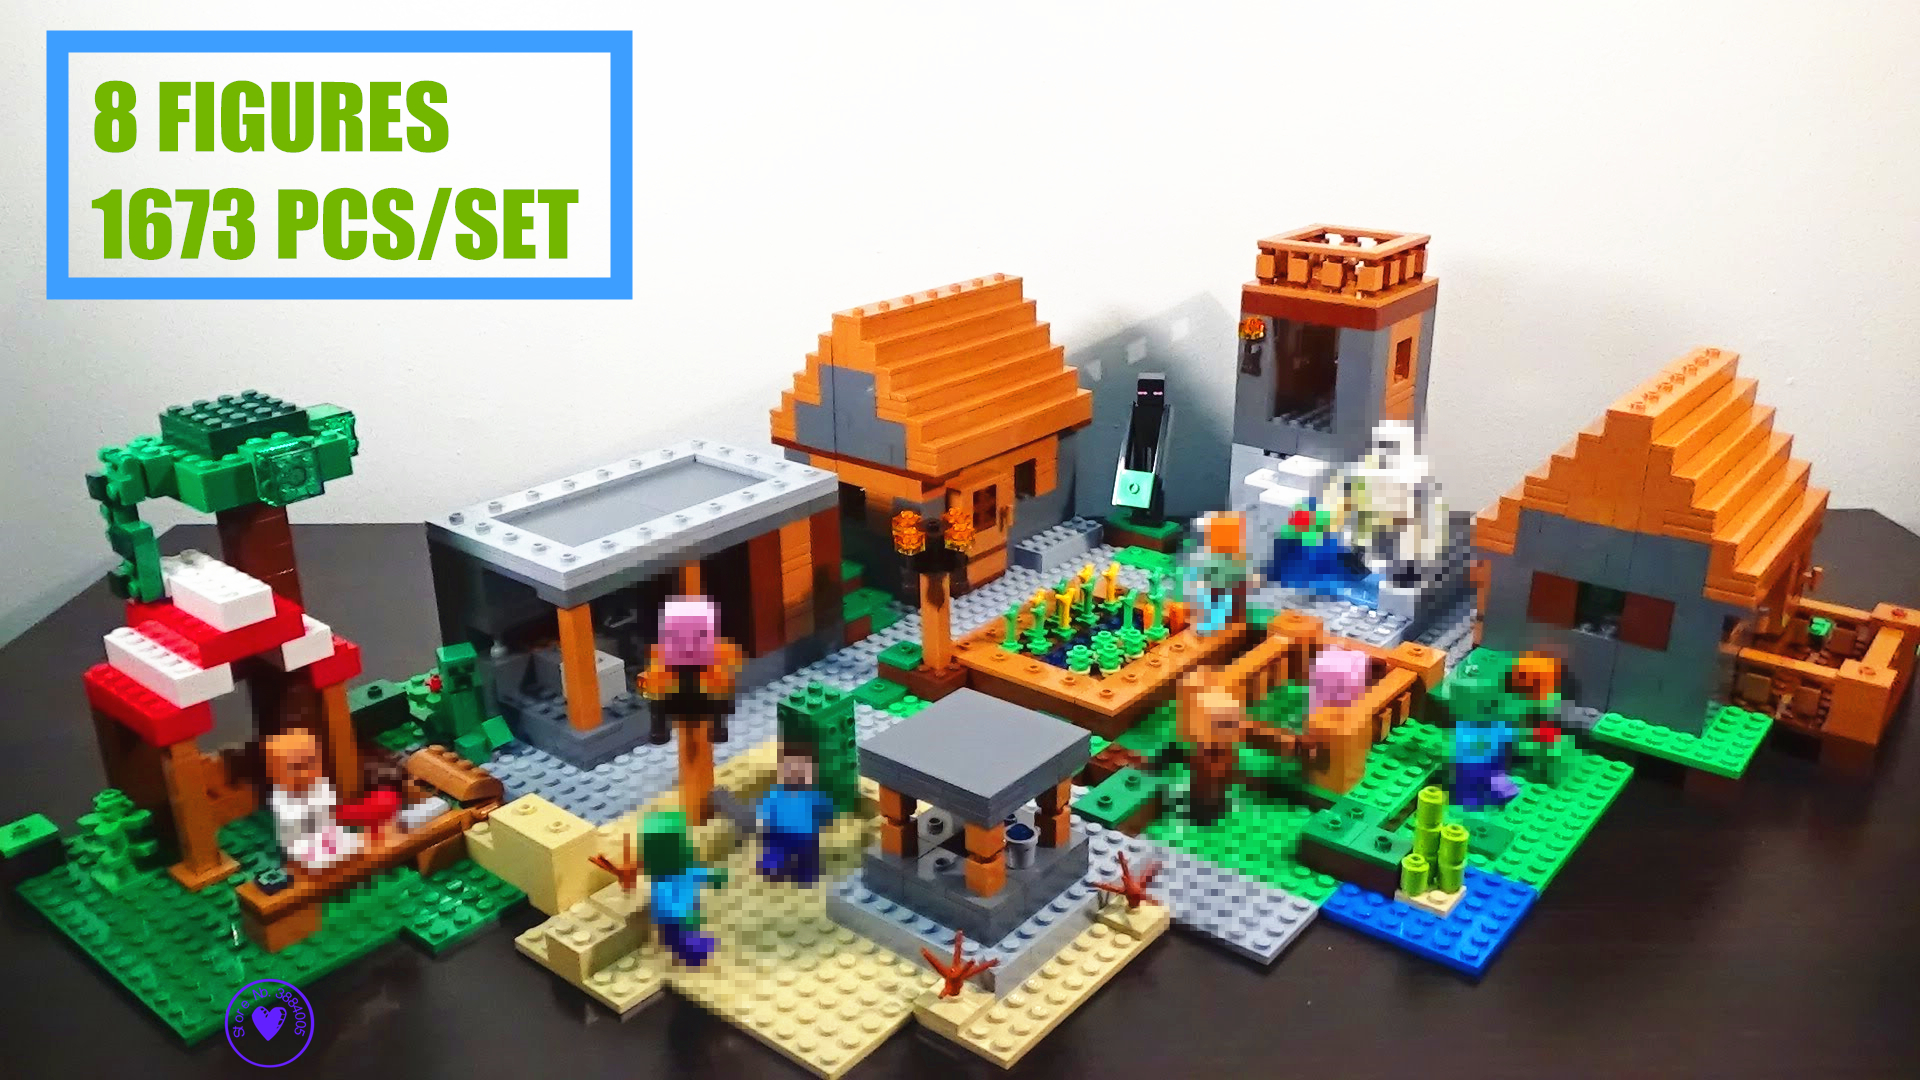 New my worlds Village Minecrafted fit legoings minecrafted figures city Model building blocks bricks 21128 diy toys kid gift my world figures toy building blocks compatible with legoinglys minecrafted city 4 in 1 diy garden bricks toy gift for kid